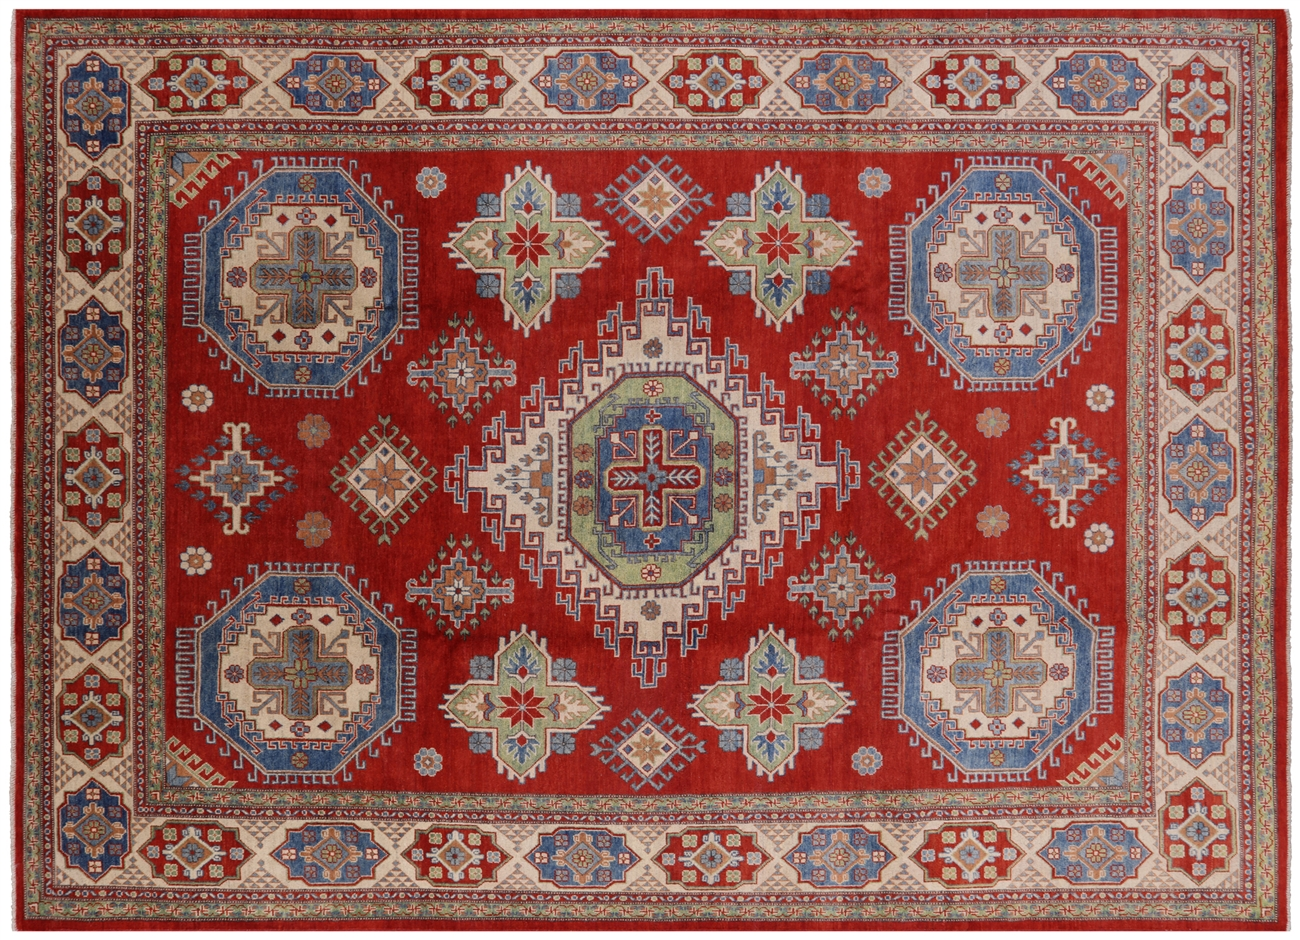 Hand Knotted 9 X12 Pakistani Red Kazak Hand Knotted Wool Area Rug H6883